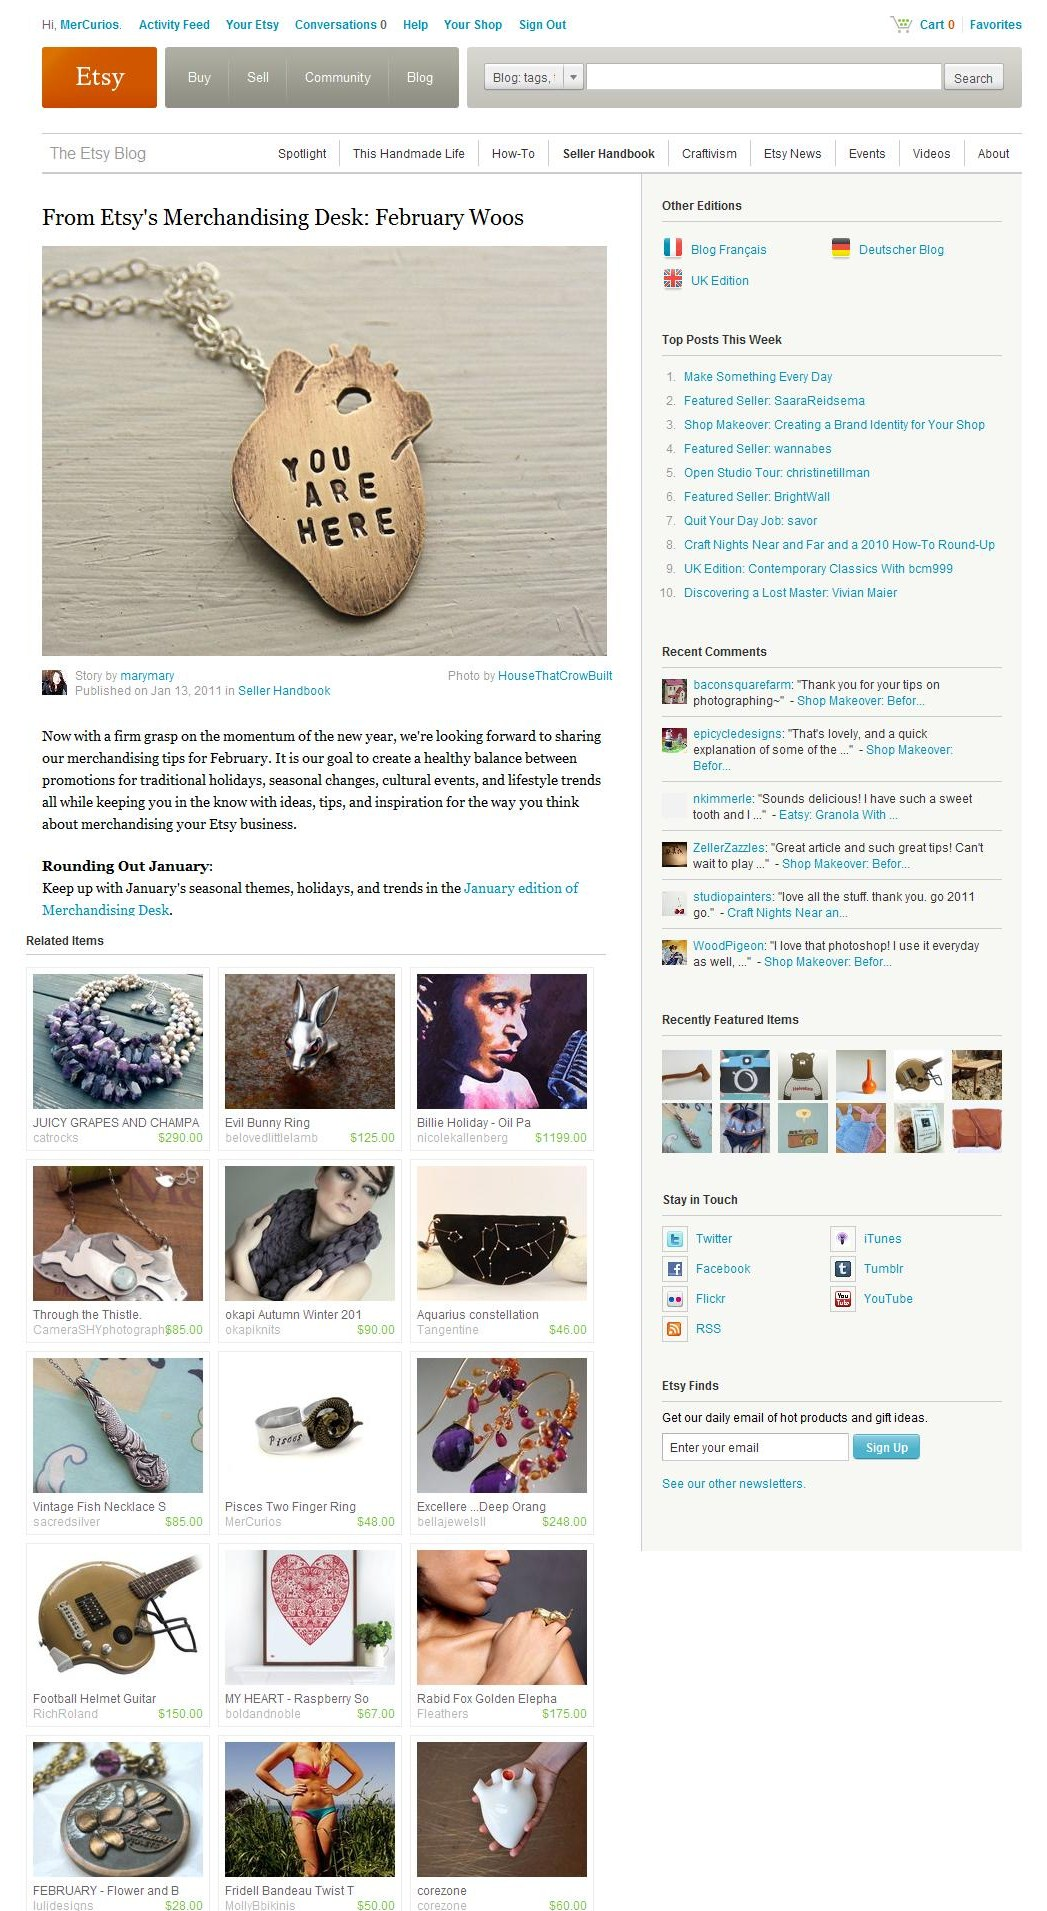 From Etsy's Merchandising Desk - February Woos // January 2011